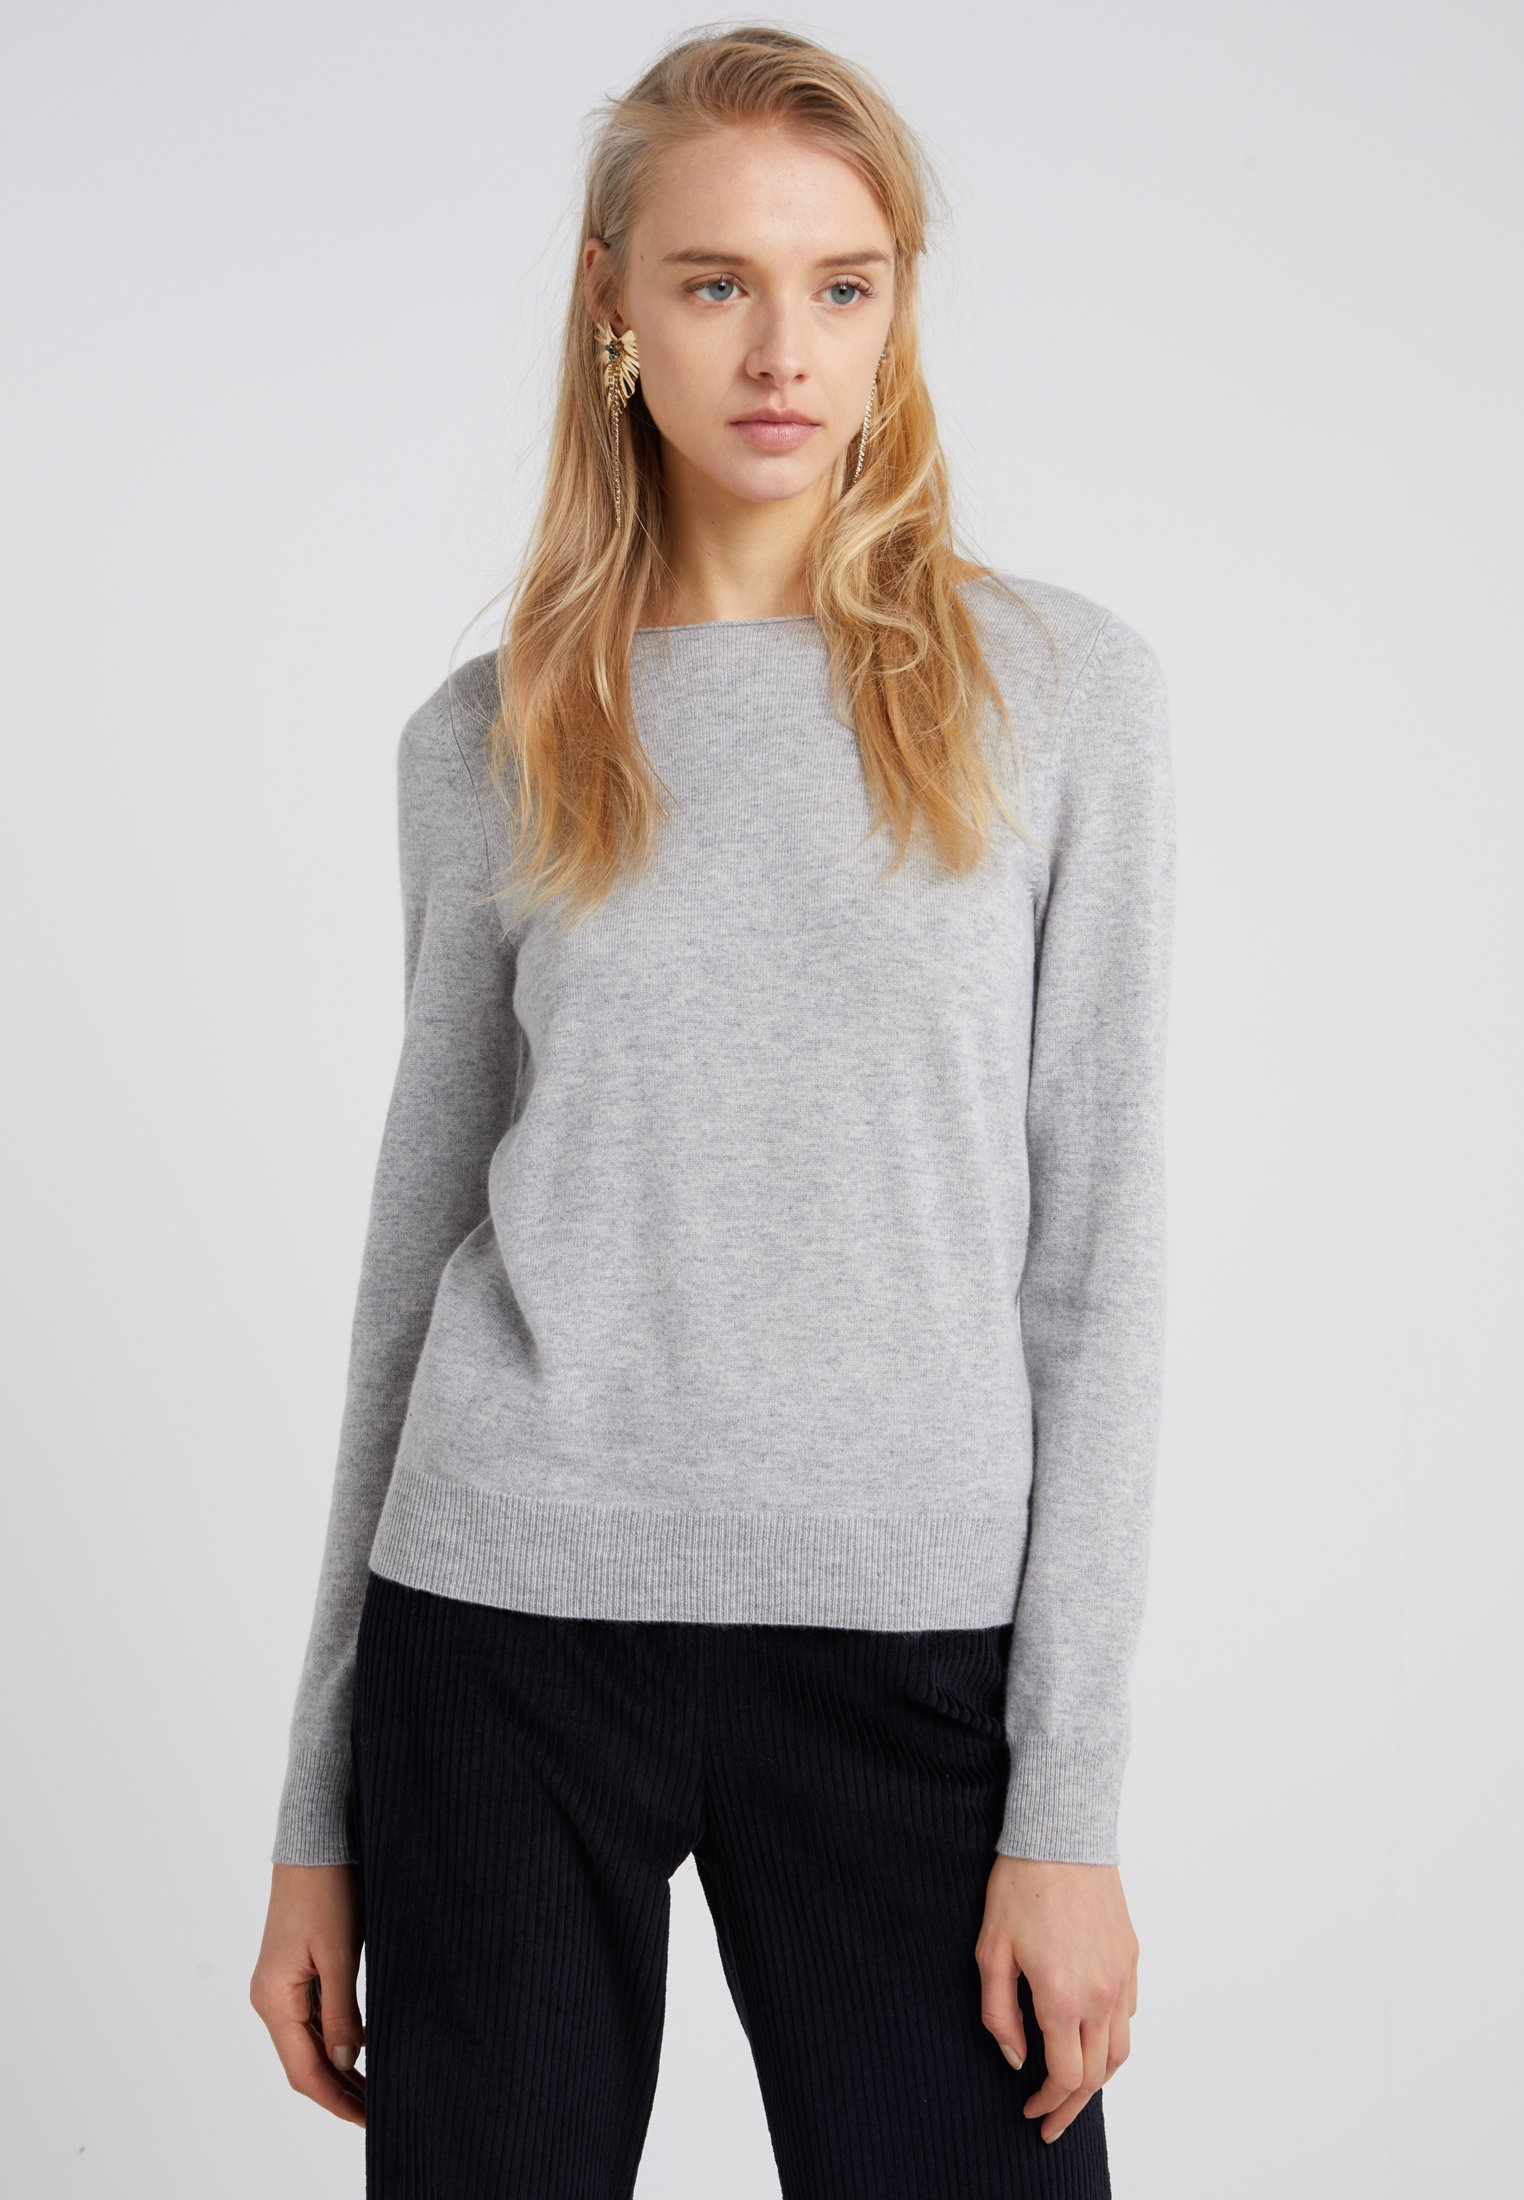 Repeat Sweter - silver/grey